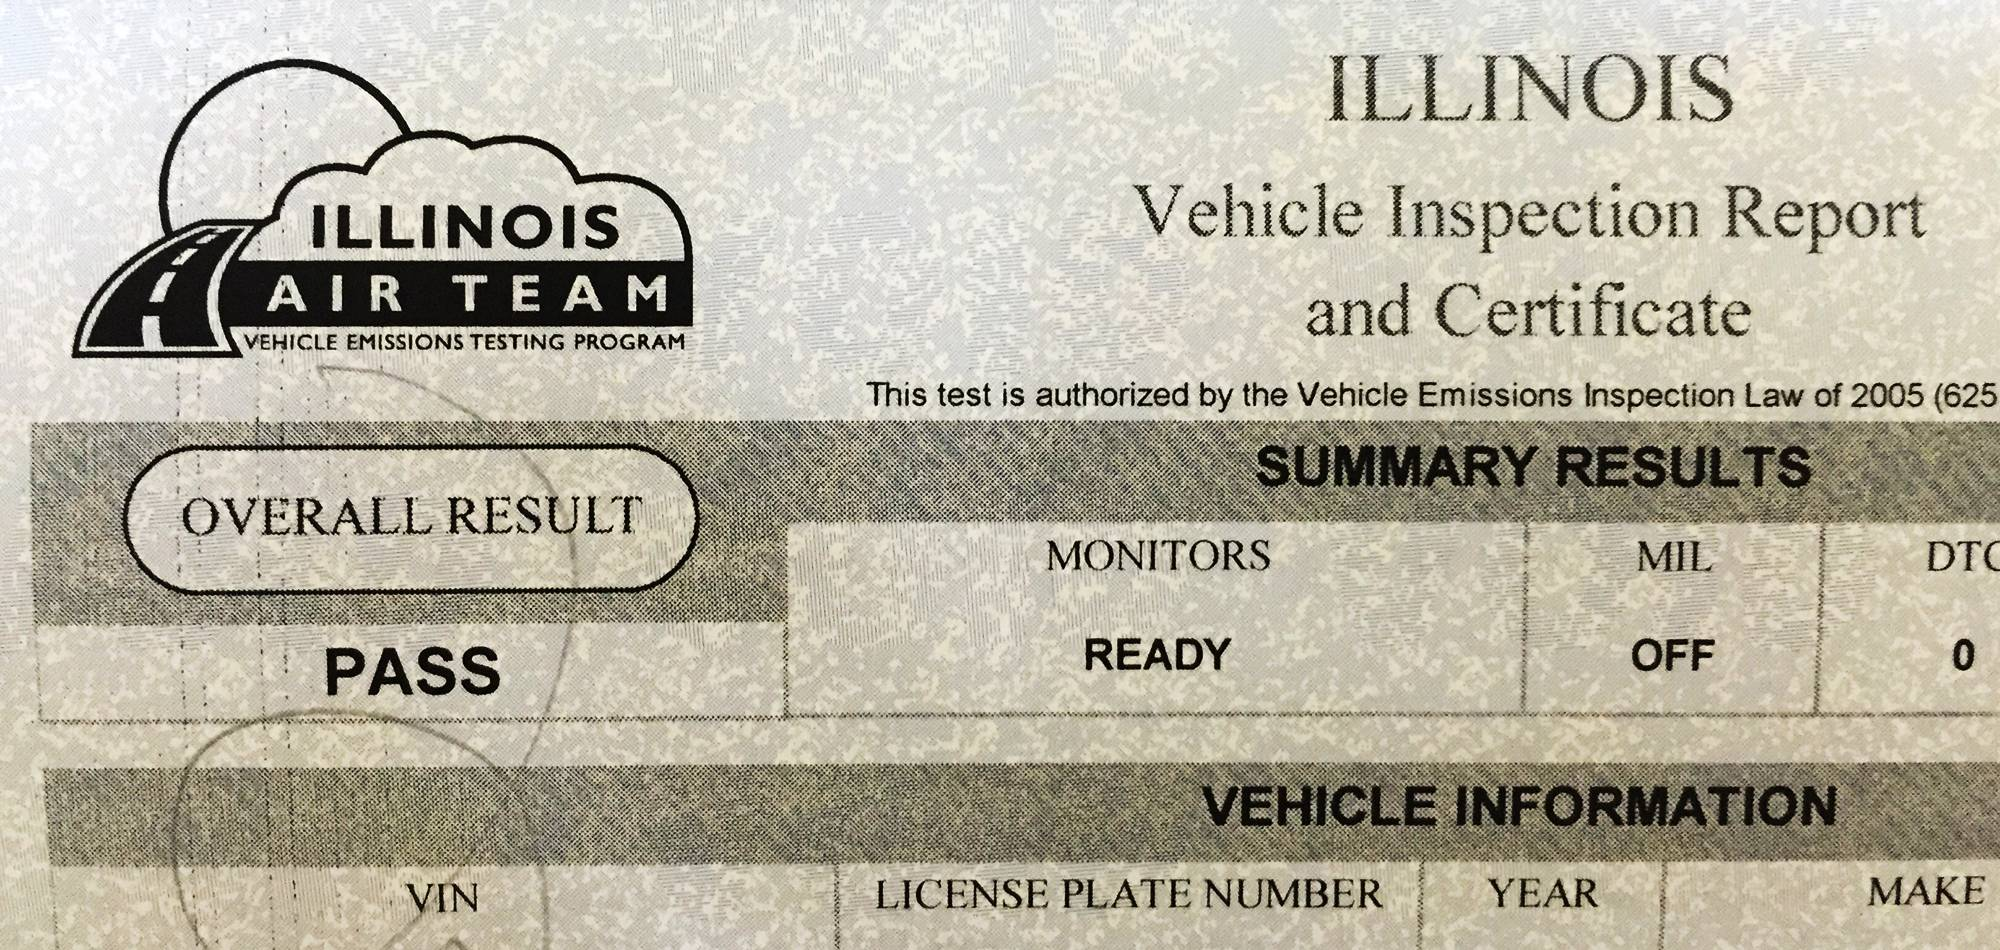 You won't be seeing many Illinois vehicle emissions reports until a state budget impasse is resolved.